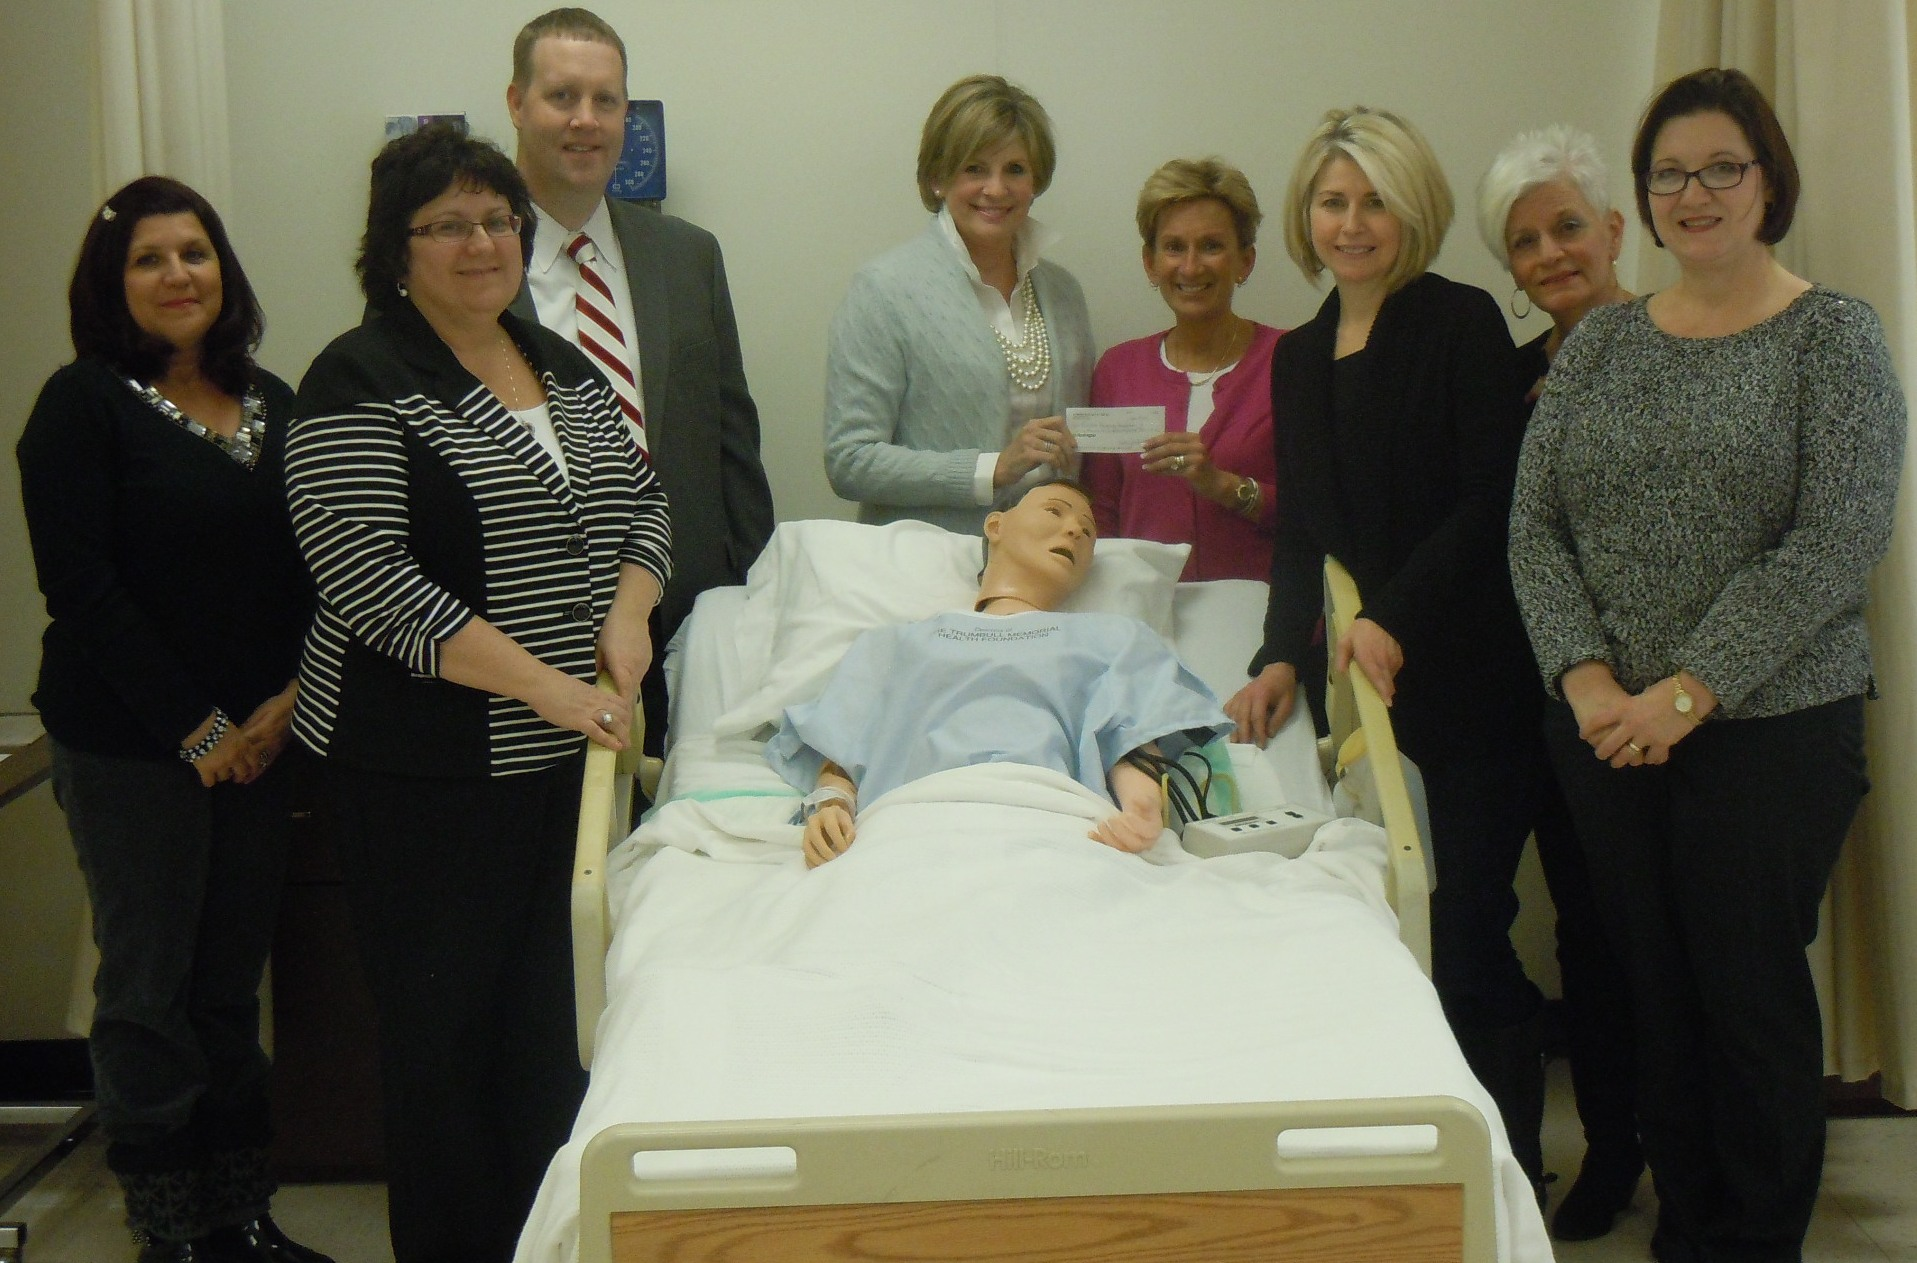 Sarah Vosmik (left center), president of the Women's Auxilary at Trumbull Memorial Hospital, presents a check of over $20,000 to Kathy Dwinnells (right center), Kent State University at Trumbull's nursing program coordinator.